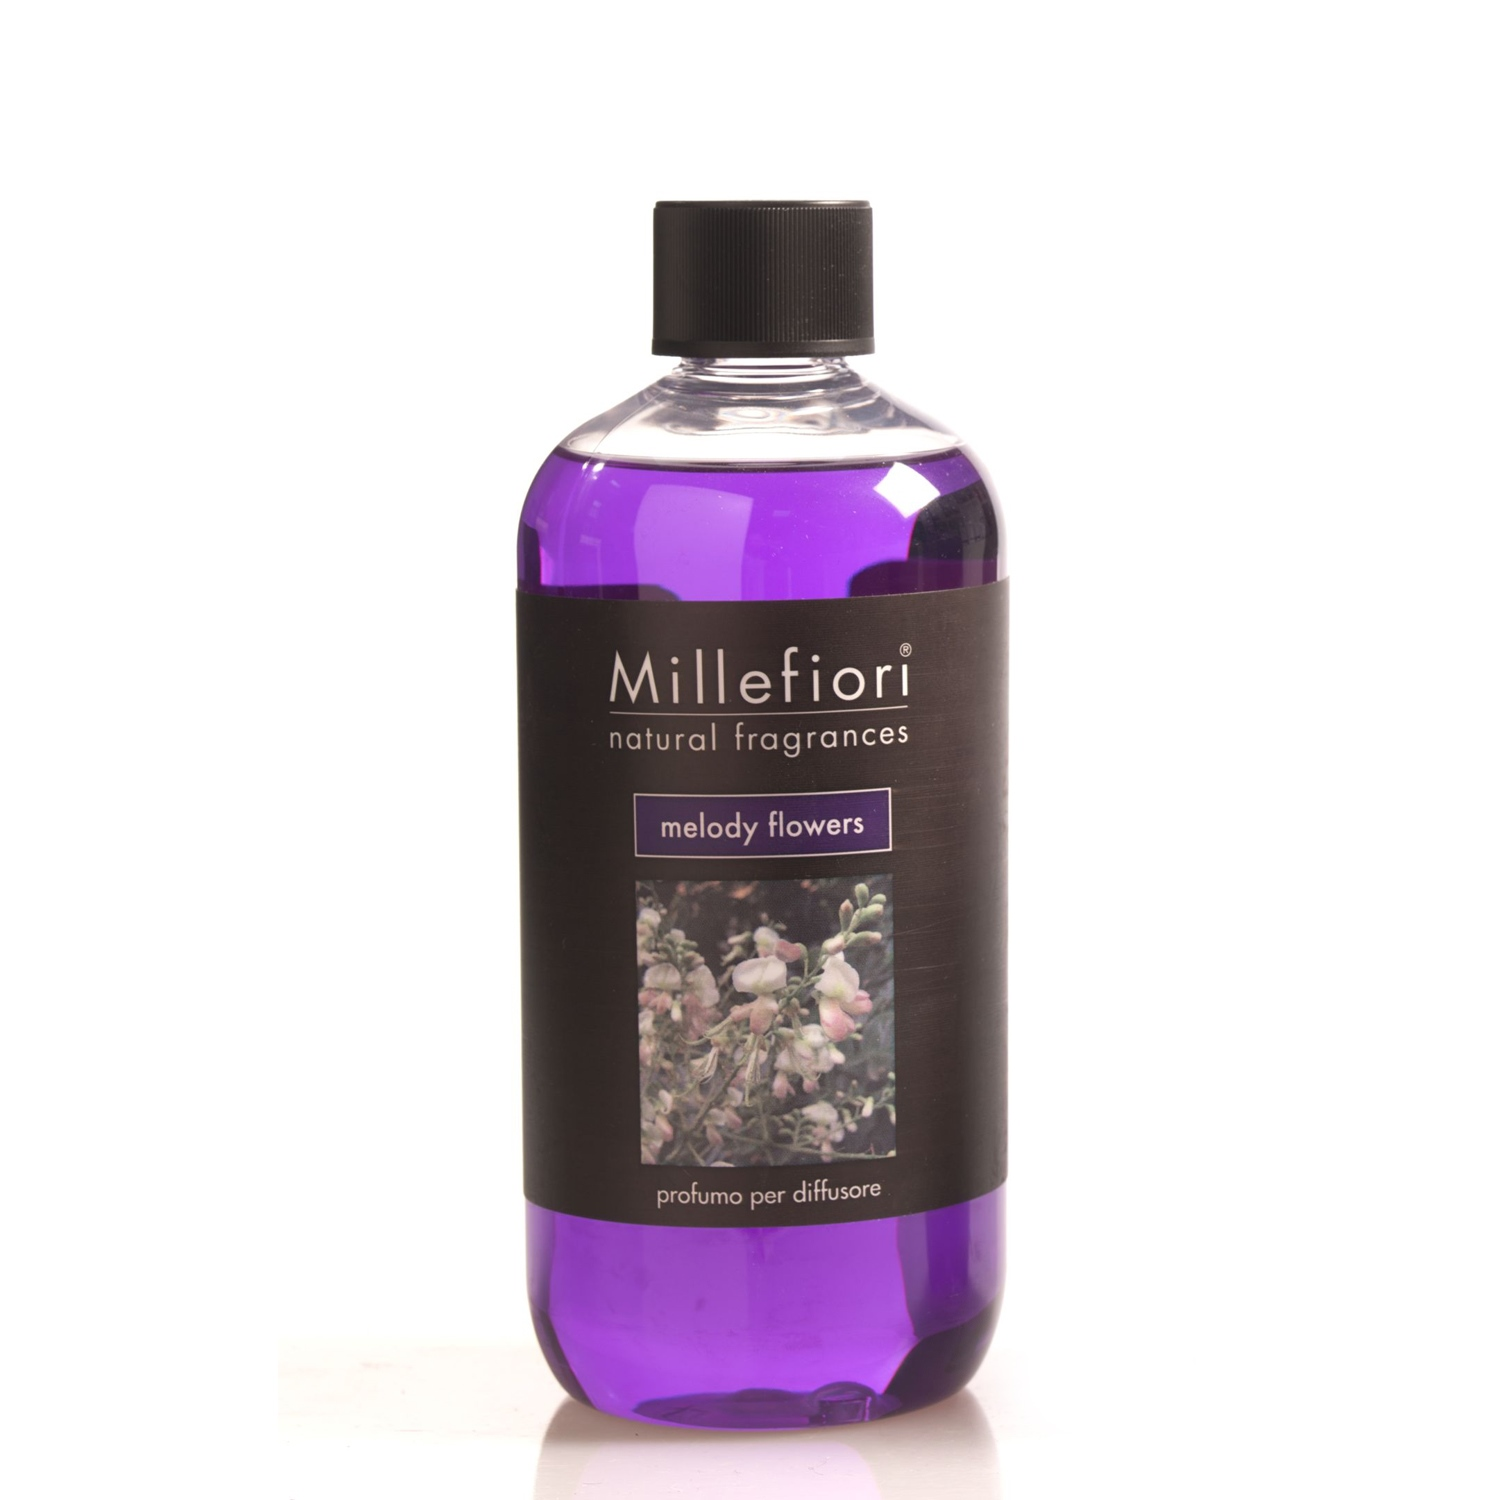 Raumduft Diffuser Millefiori Natural Room Fragrance Diffuser Refill Bottle 500 Ml Melody Flowers